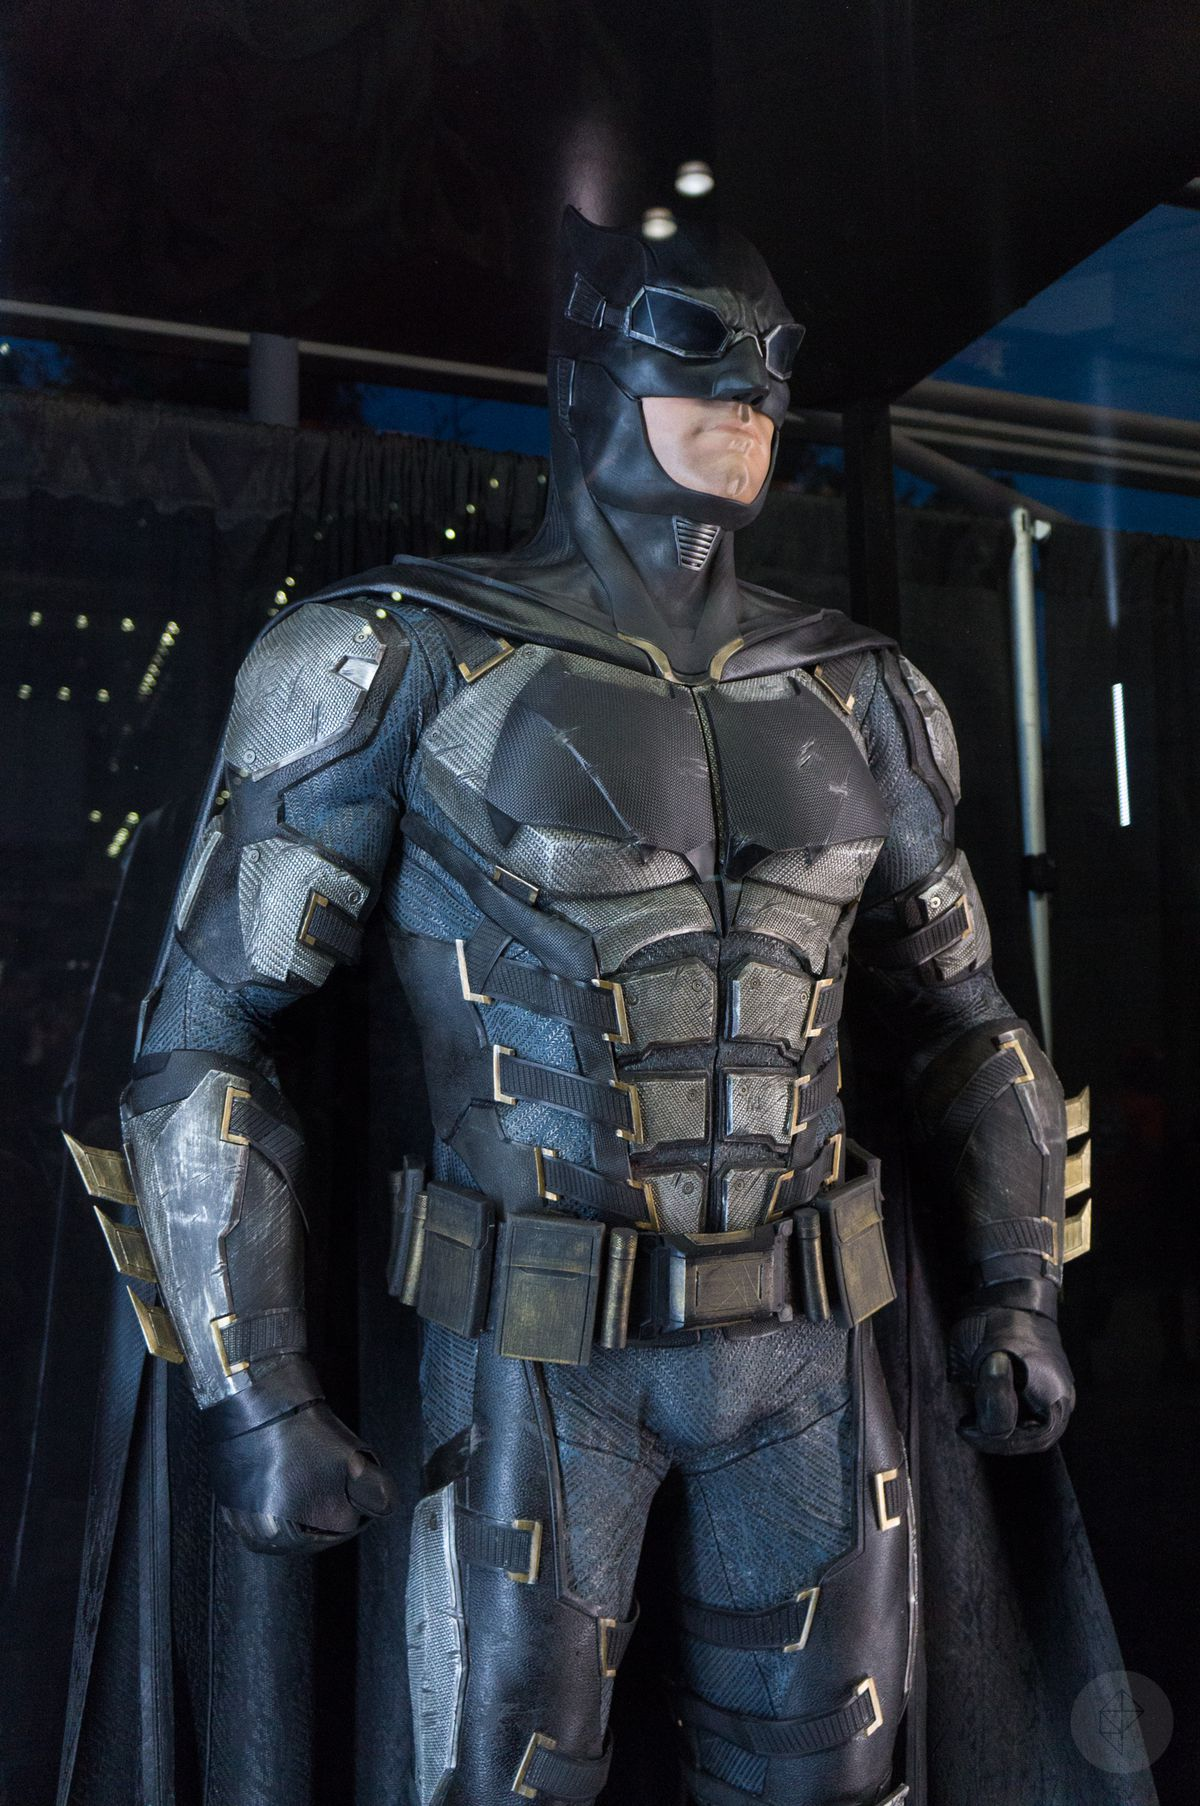 Batman costume from Justice League movie in glass case at NYCC 2017, from the thighs up